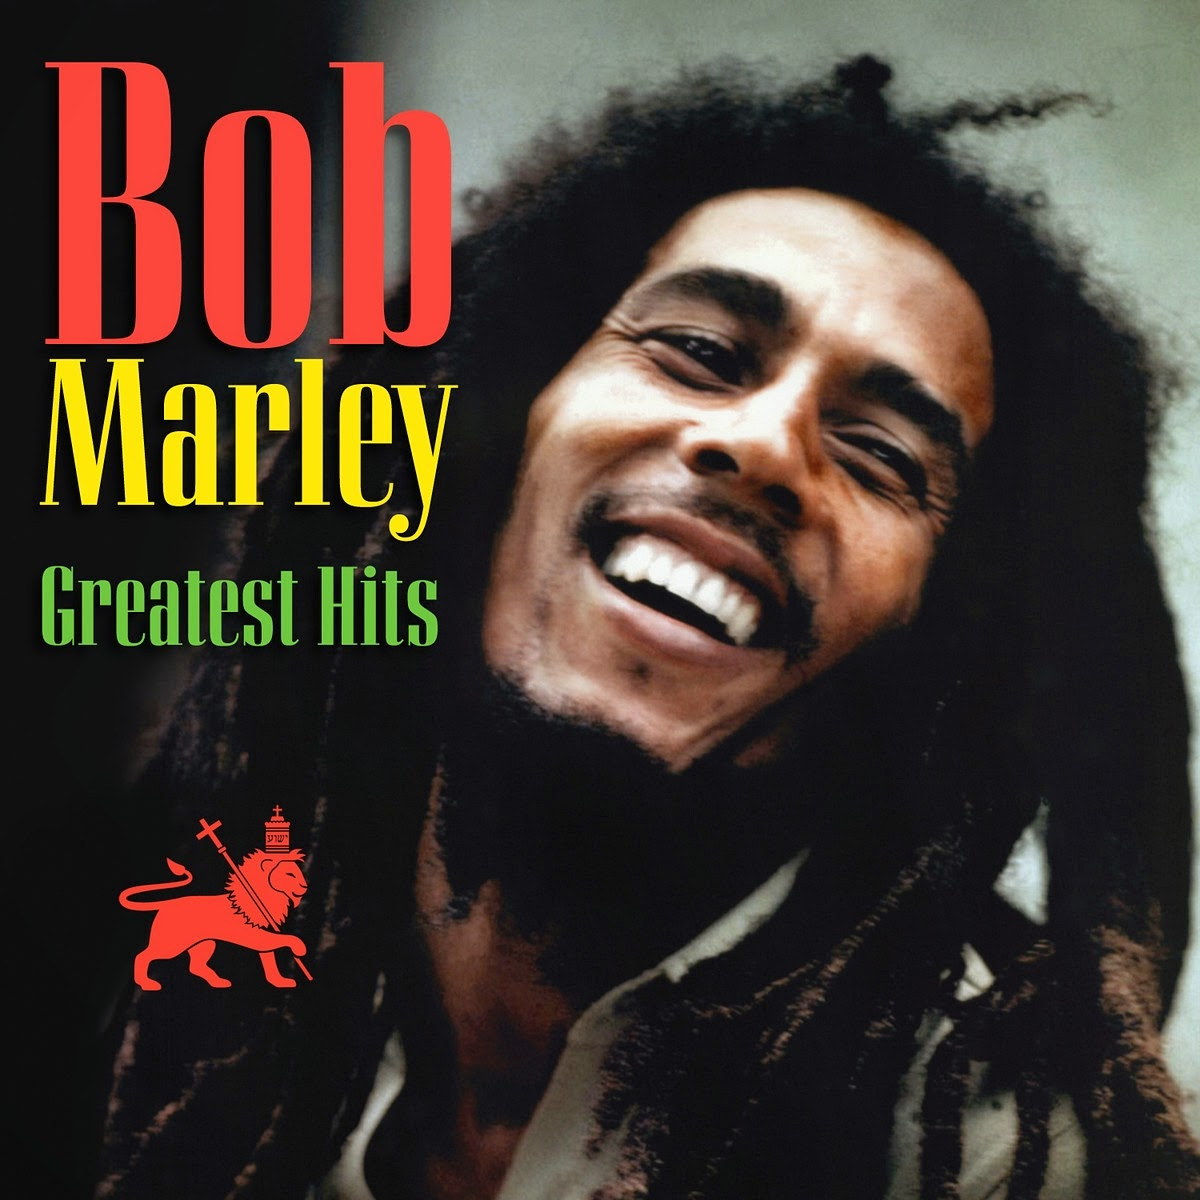 Bob Marley Cry Song Mp3 Download: Creative Fan Made Albums: Bob Marley